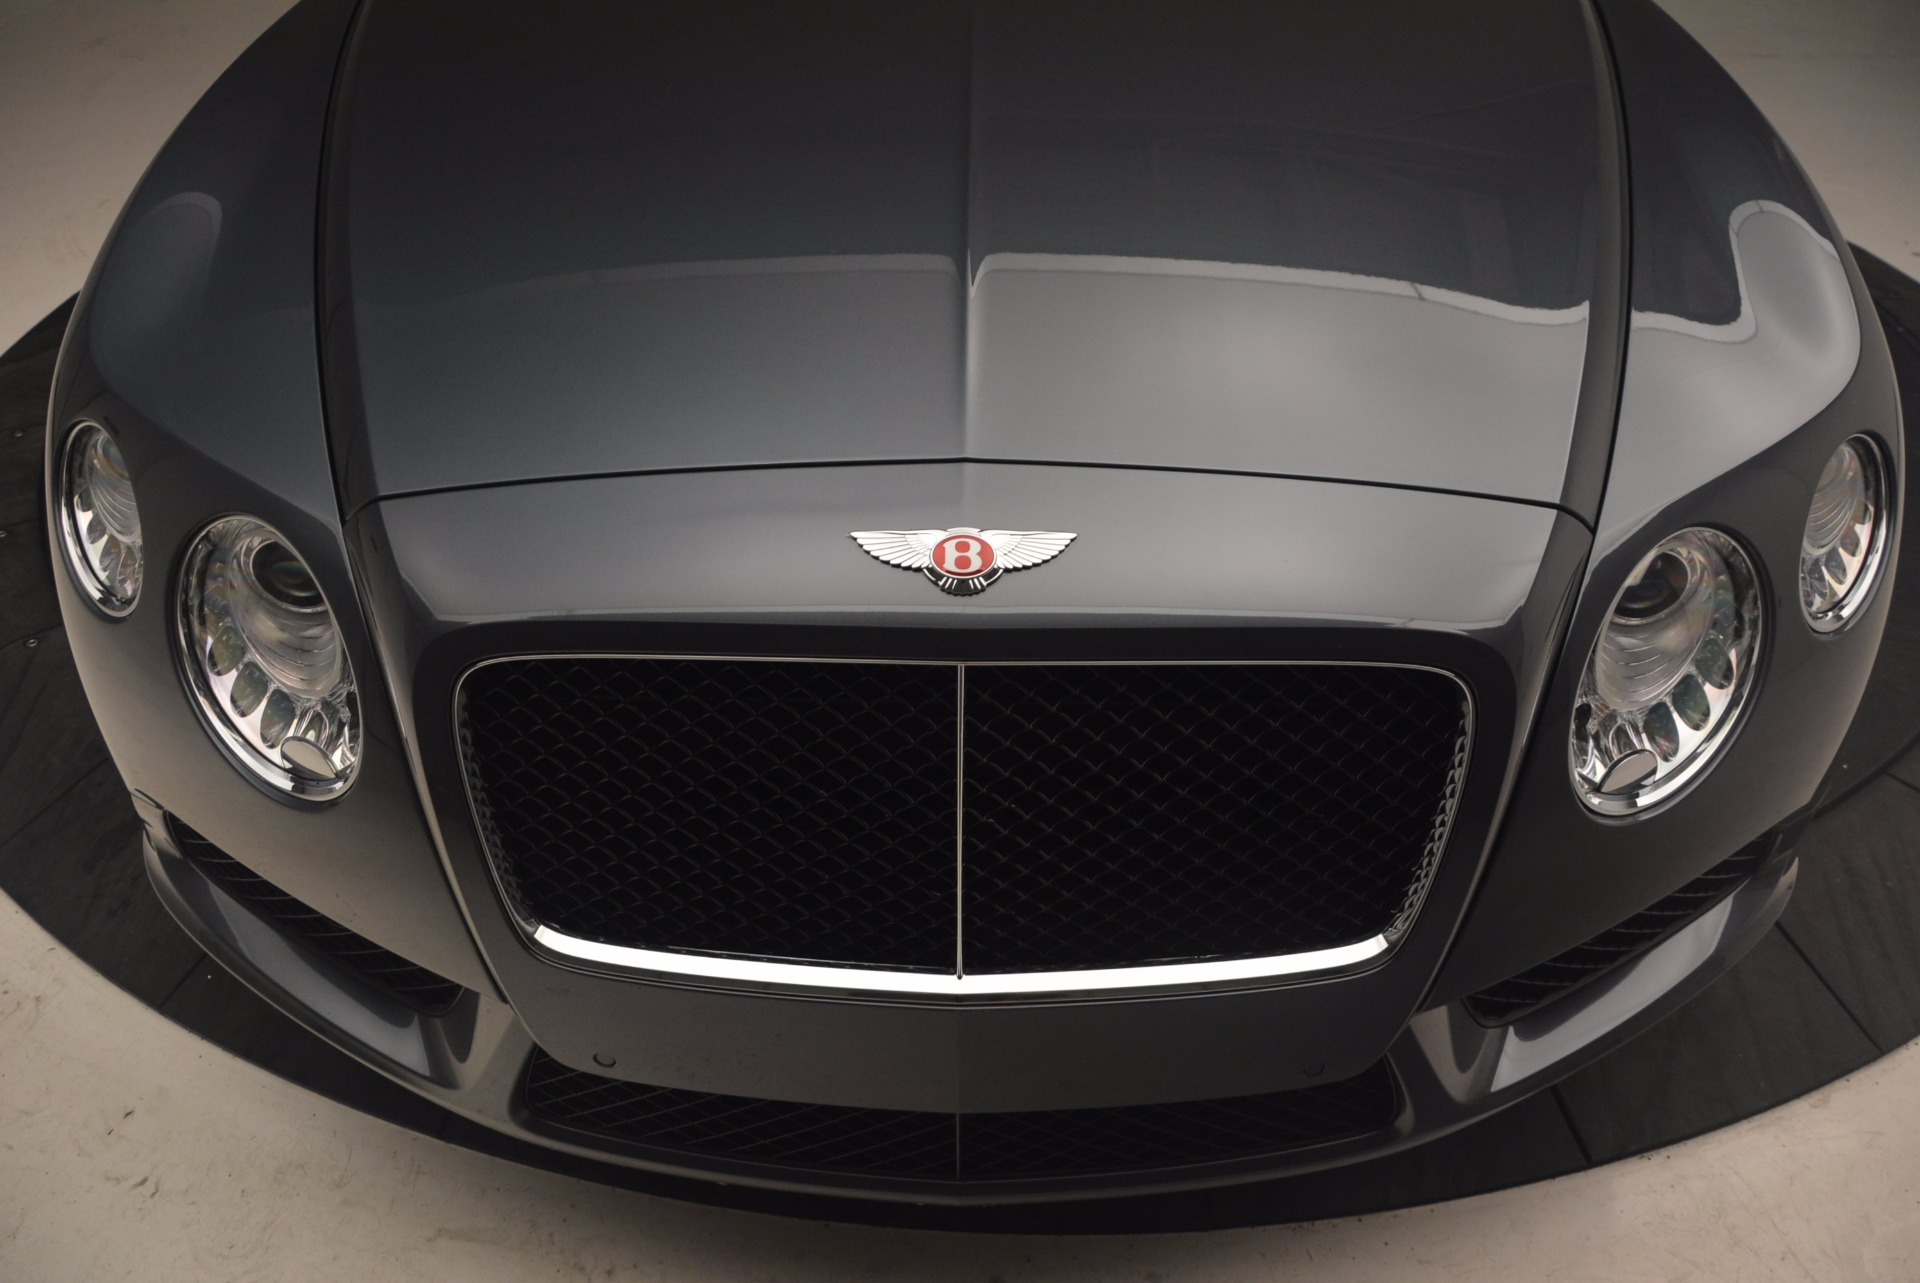 Used 2013 Bentley Continental GT V8 Le Mans Edition, 1 of 48 For Sale In Greenwich, CT 1288_p25